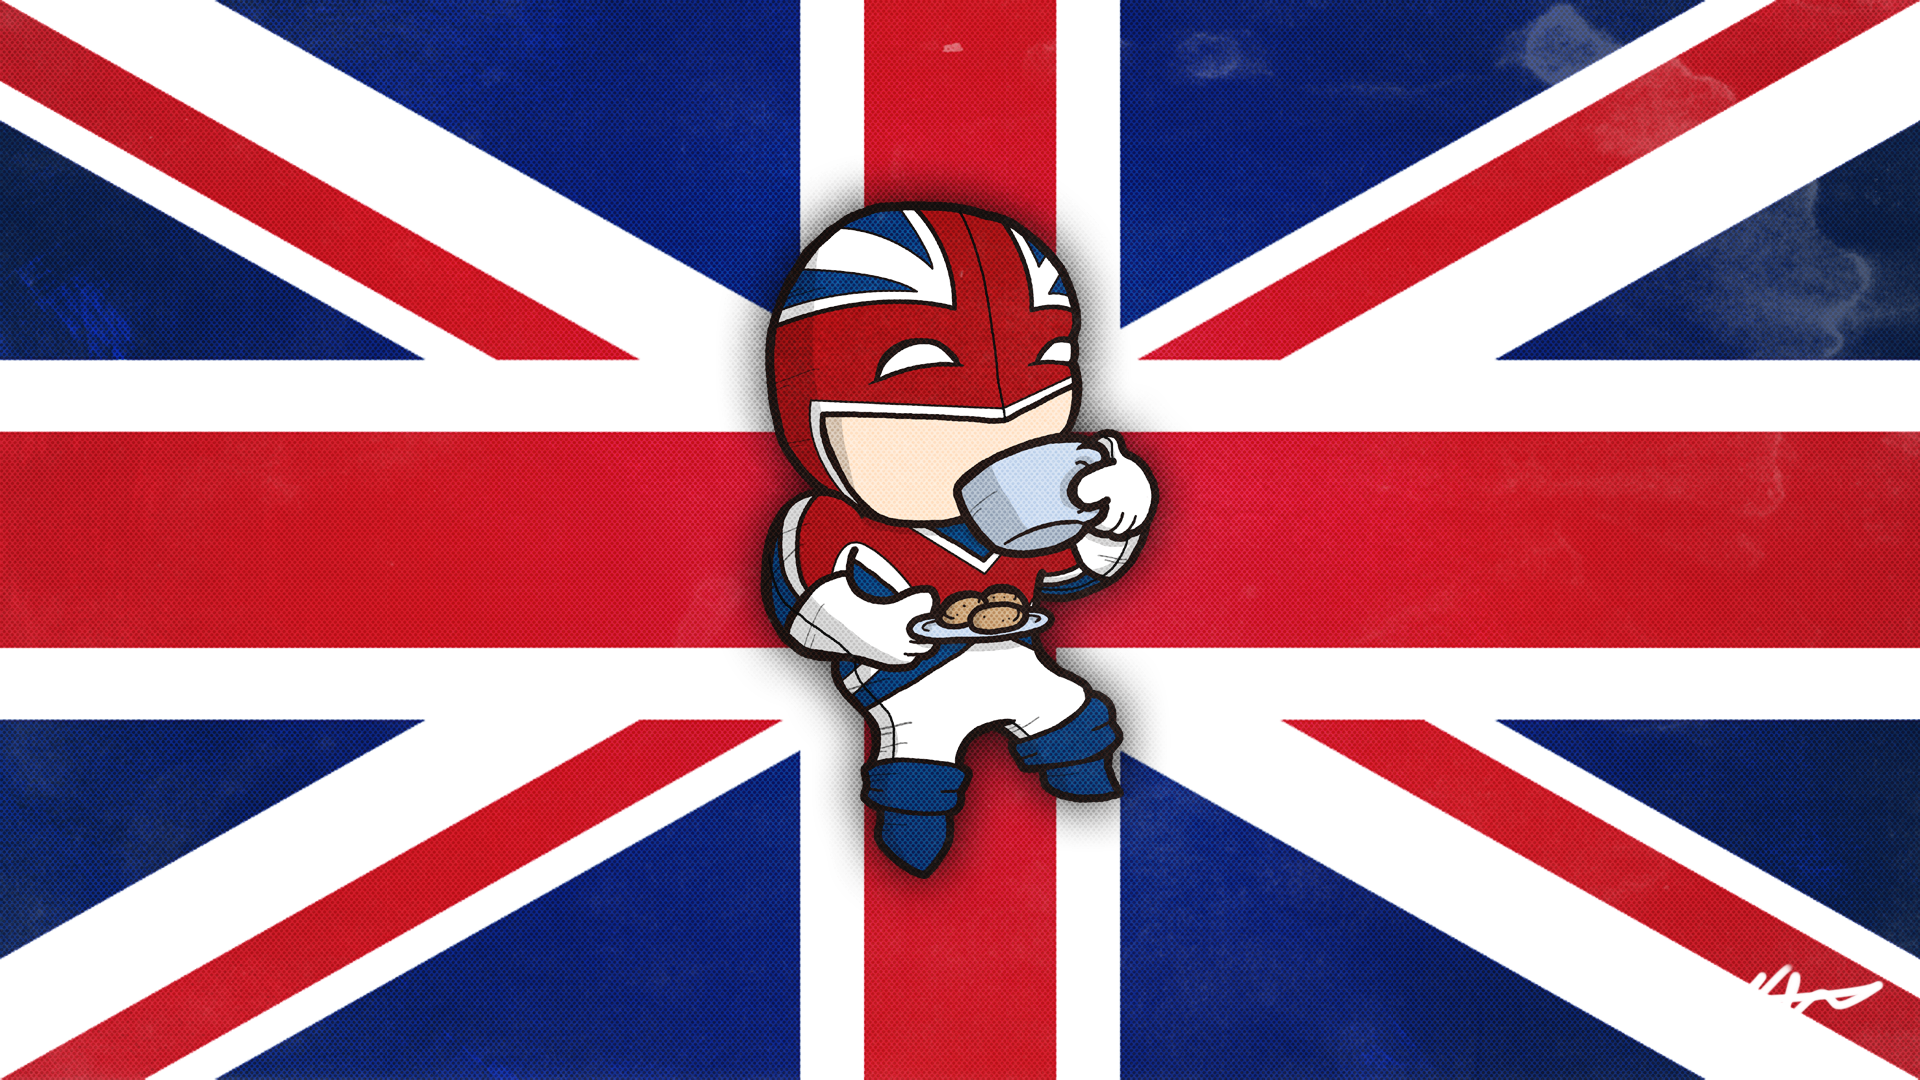 Was Requested to Draw Captain Britain [1920x1080]   Imgur 1920x1080